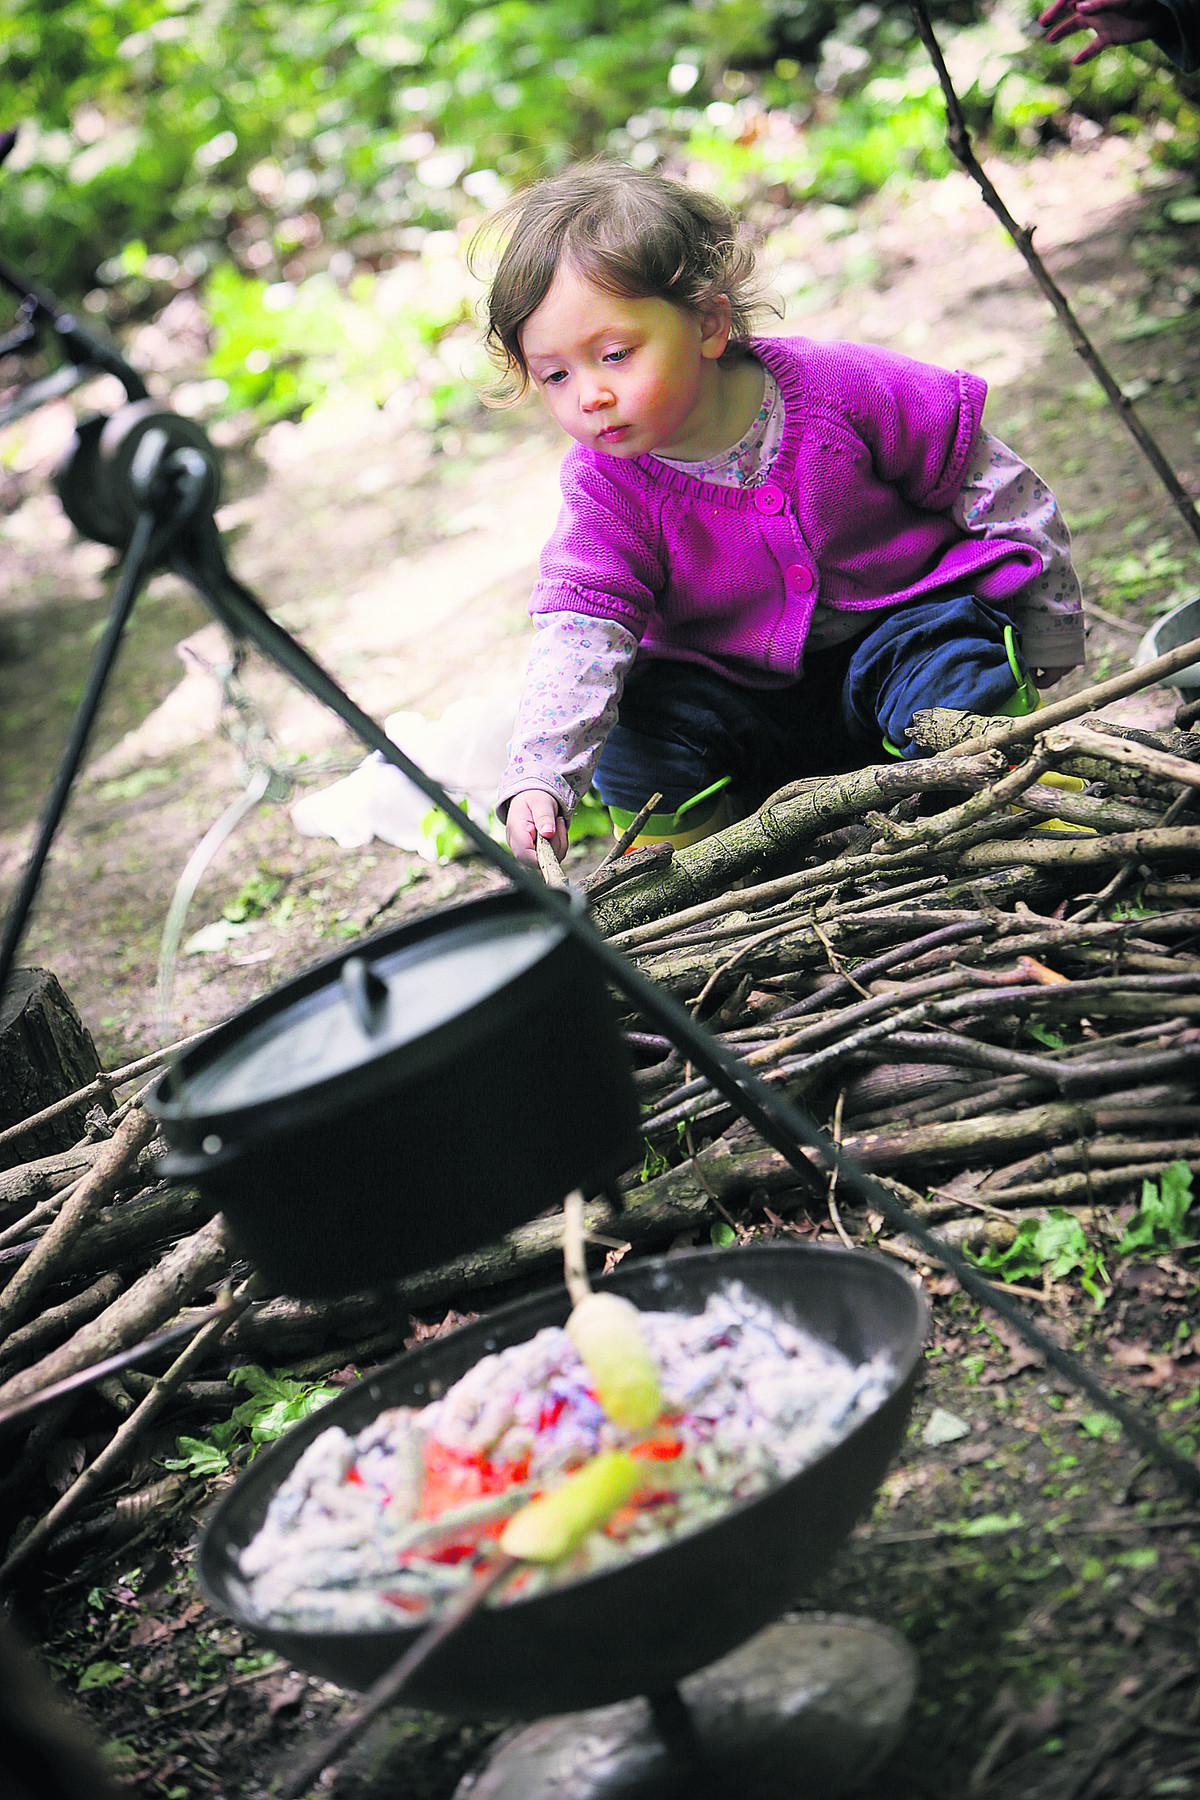 Anabelle Kinghan, two, waits as her bread cooks on a stick over the fire